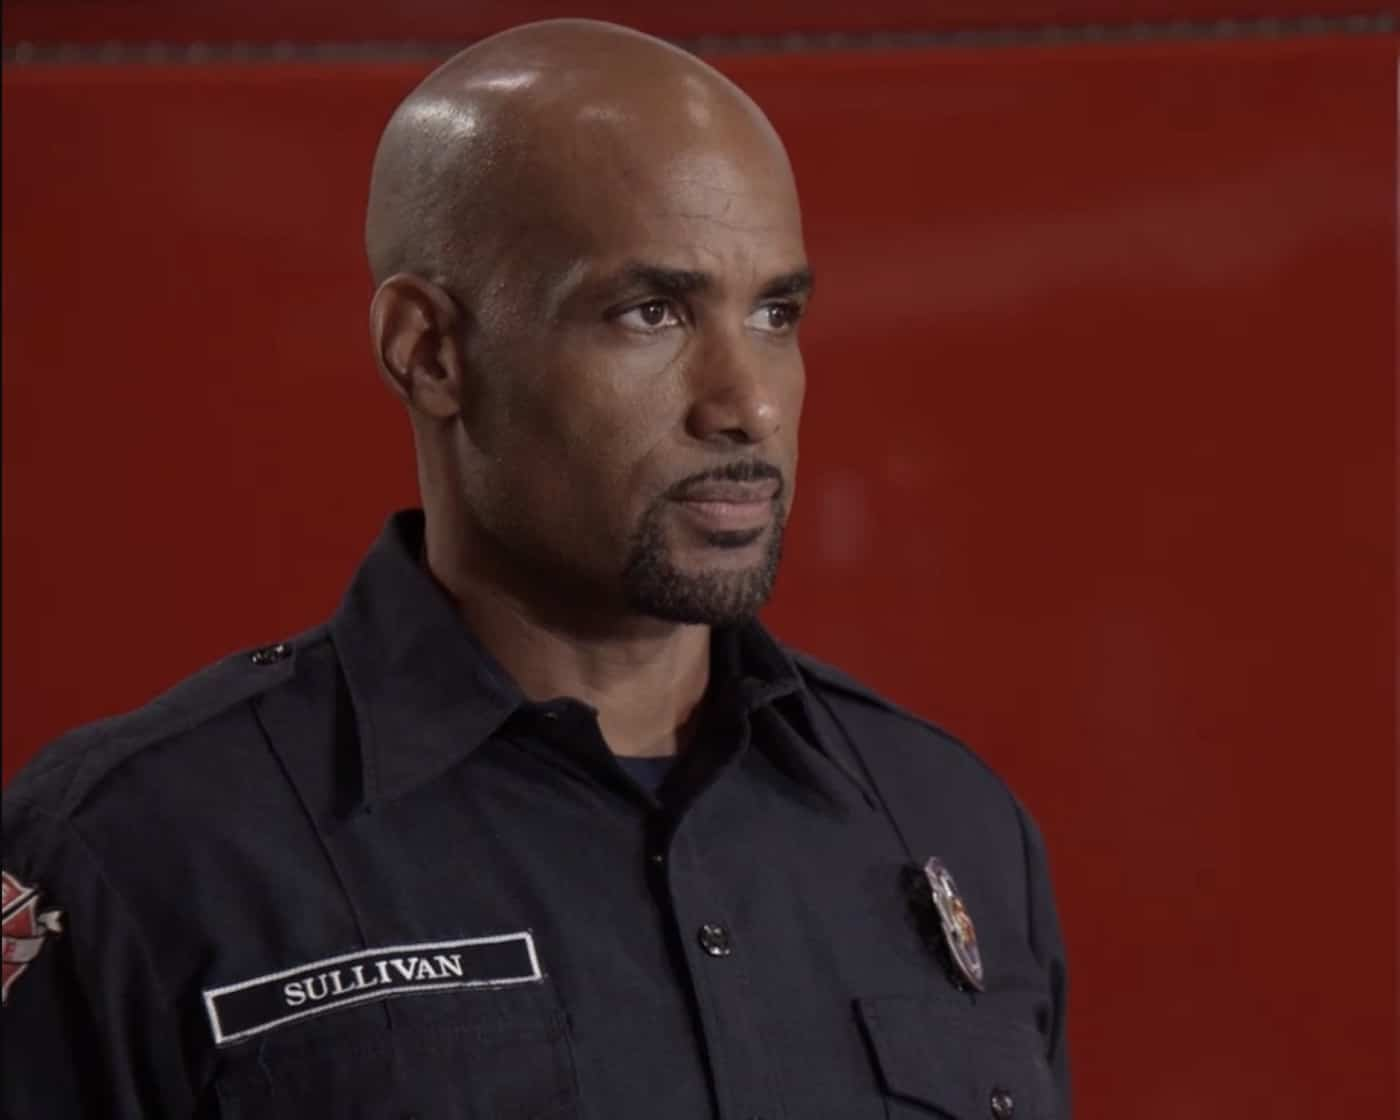 """STATION 19 Season 5 Episode 1 - """"Phoenix from the Flame"""" – Relationships are challenged at Station 19 following Sullivan's actions at Maya and Carina's wedding, putting his marriage with Andy to the test. Dean comes to terms with his feelings for Vic, while Travis rekindles an old flame. The annual Phoenix Festival brings out some reckless behavior in some of Seattle's citizens, challenging the teams at Station 19 and Grey Sloan Memorial in the season premiere of """"Station 19,"""" THURSDAY, SEPT. 30 (8:00-9:00 p.m. EDT), on ABC. (ABC) BORIS KODJOE"""